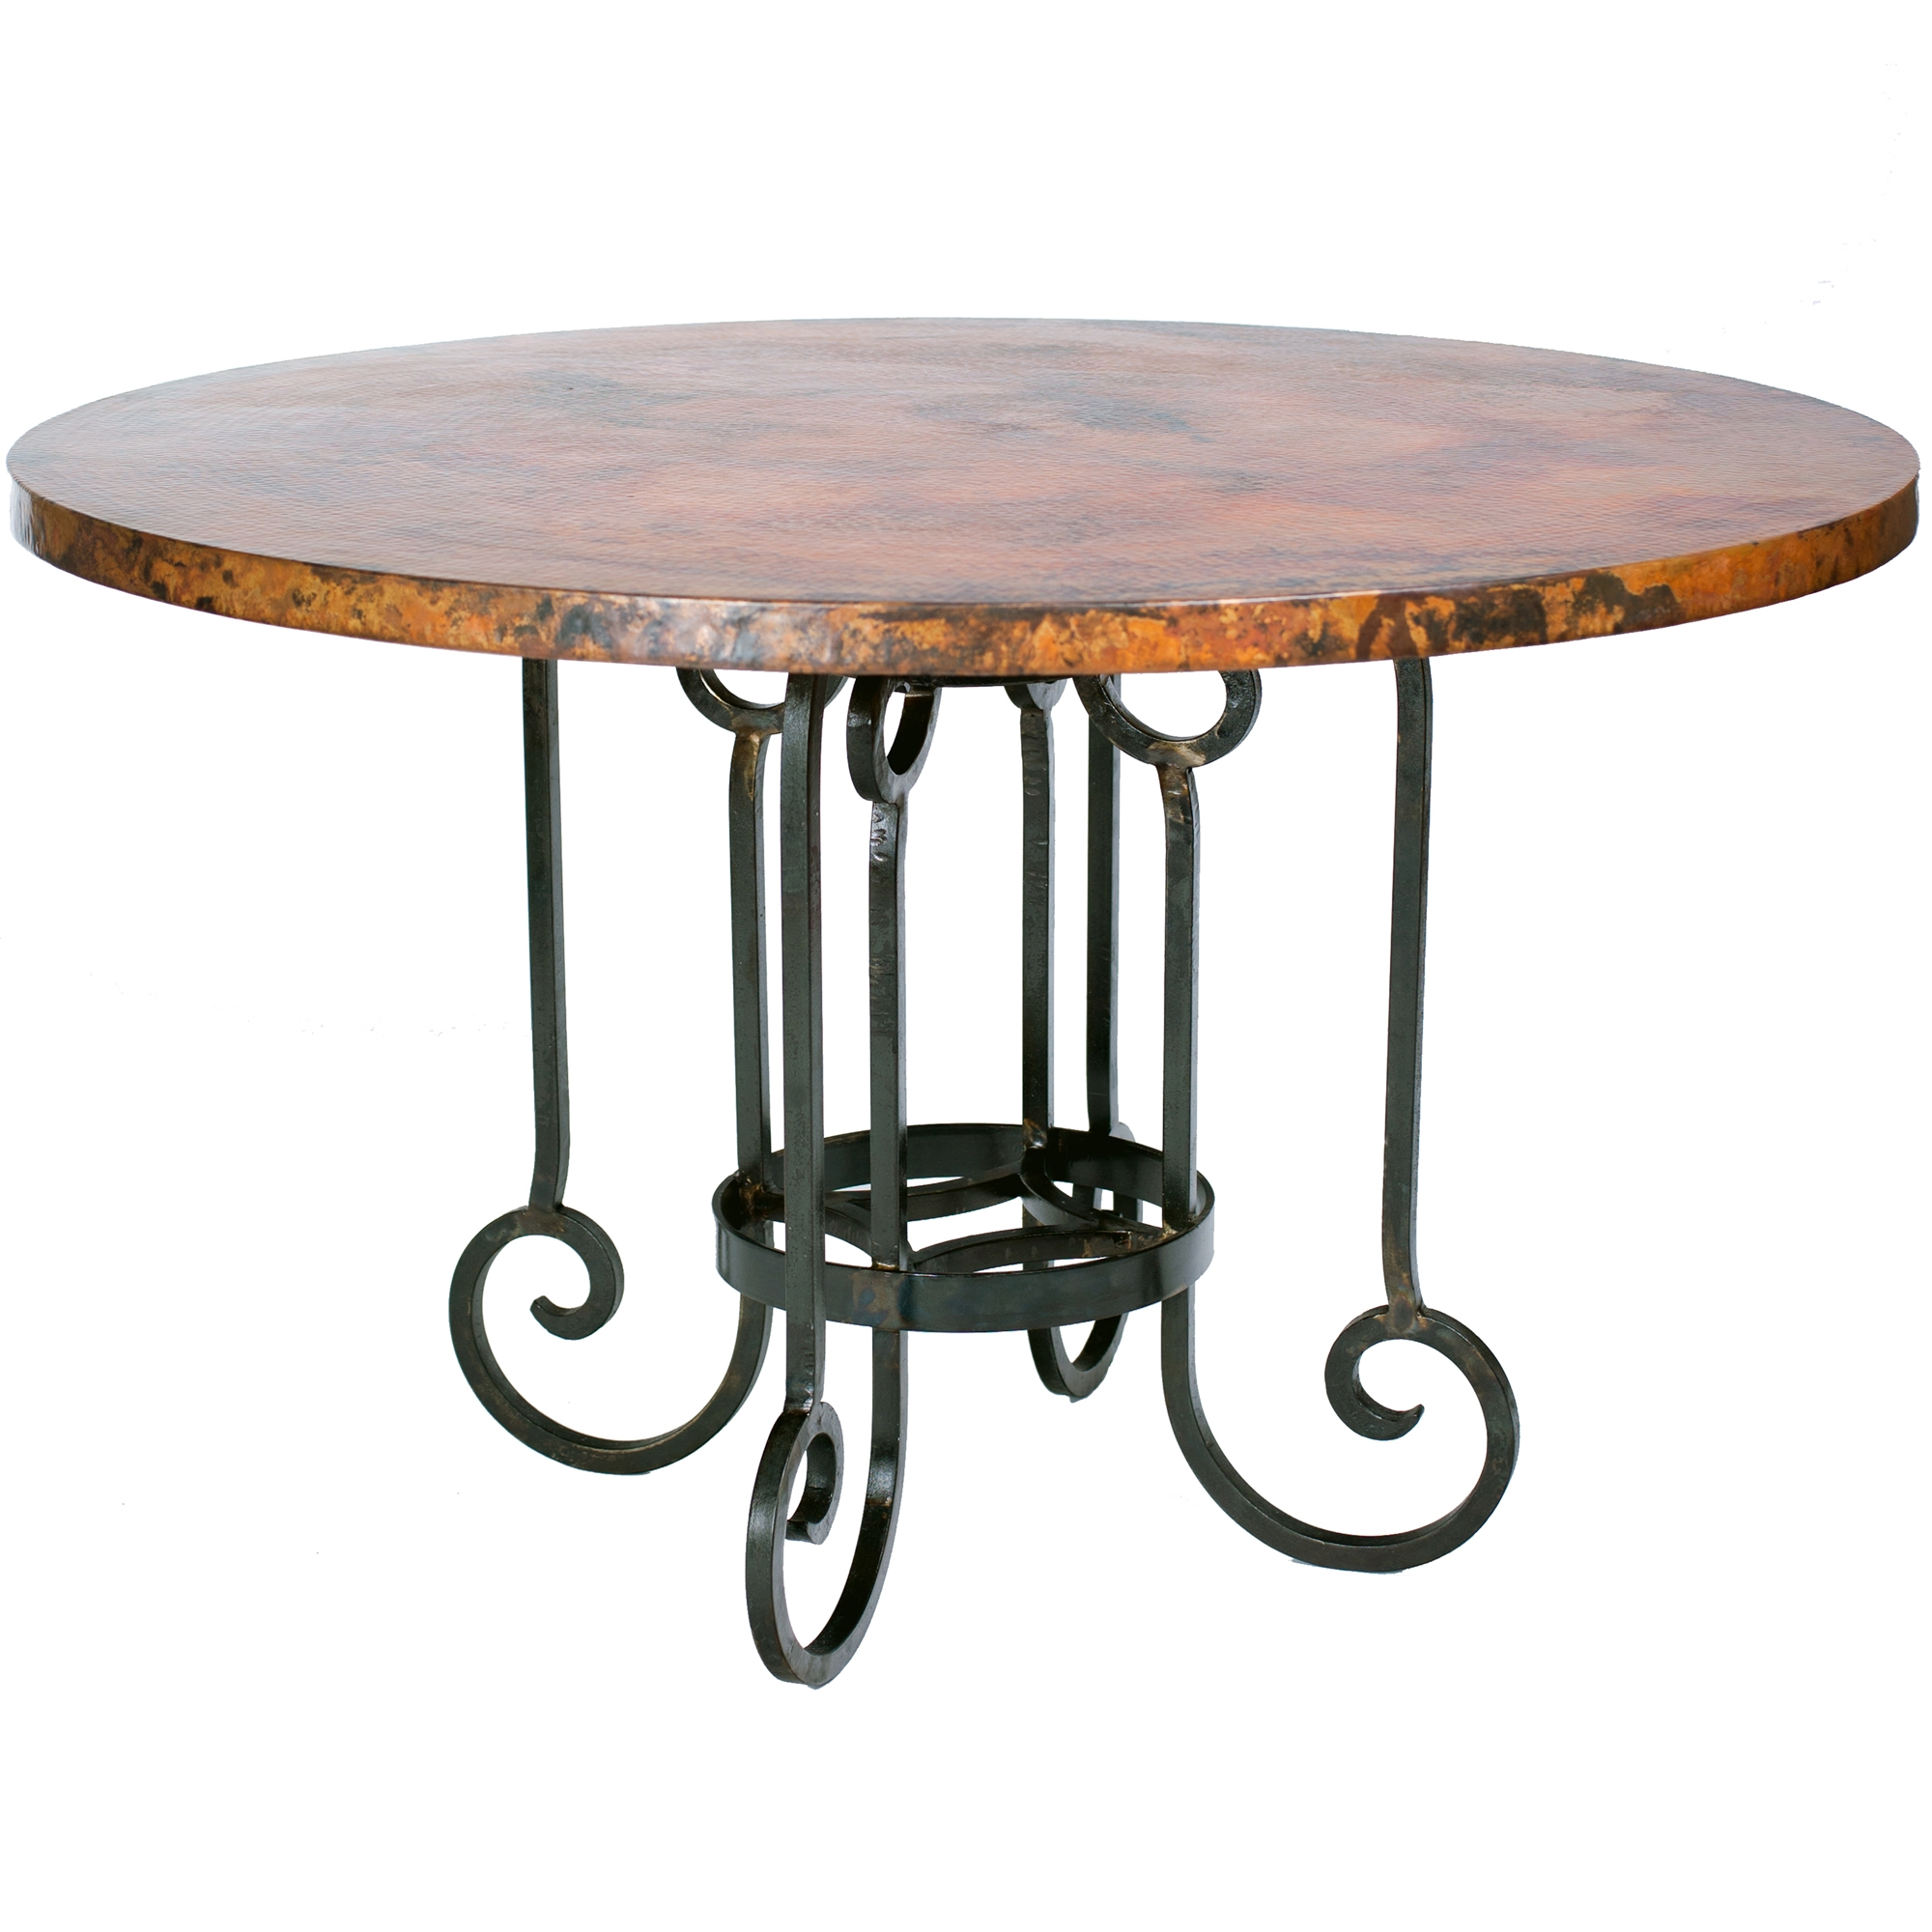 Curled Leg Round Dining Table with 48 inch Copper Top : TWI BFM5 F 518A 2 from www.timelesswroughtiron.com size 2000 x 2000 jpeg 841kB